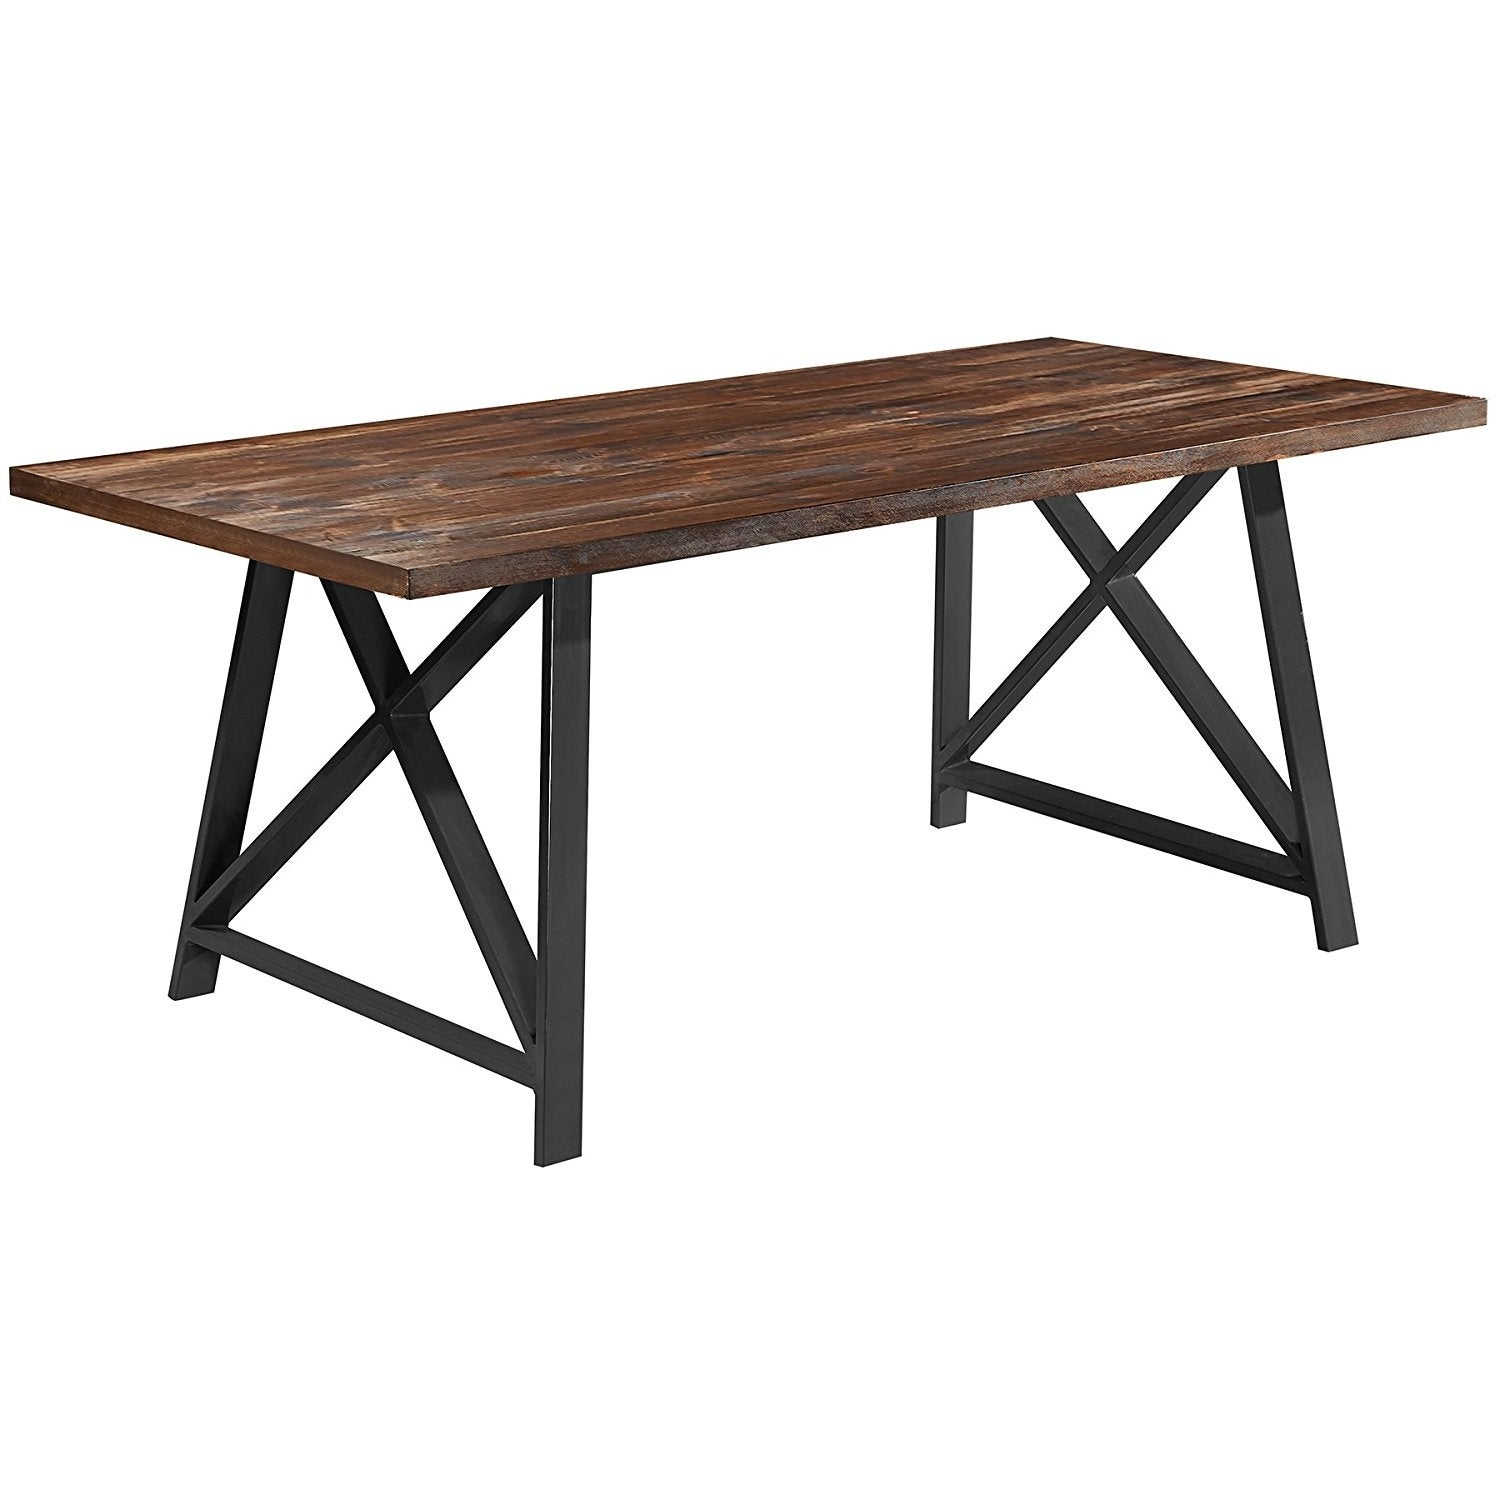 Unique 2xhome Dark Wood Modern Table Steel Frame Metal Leg Dining Table  GN41